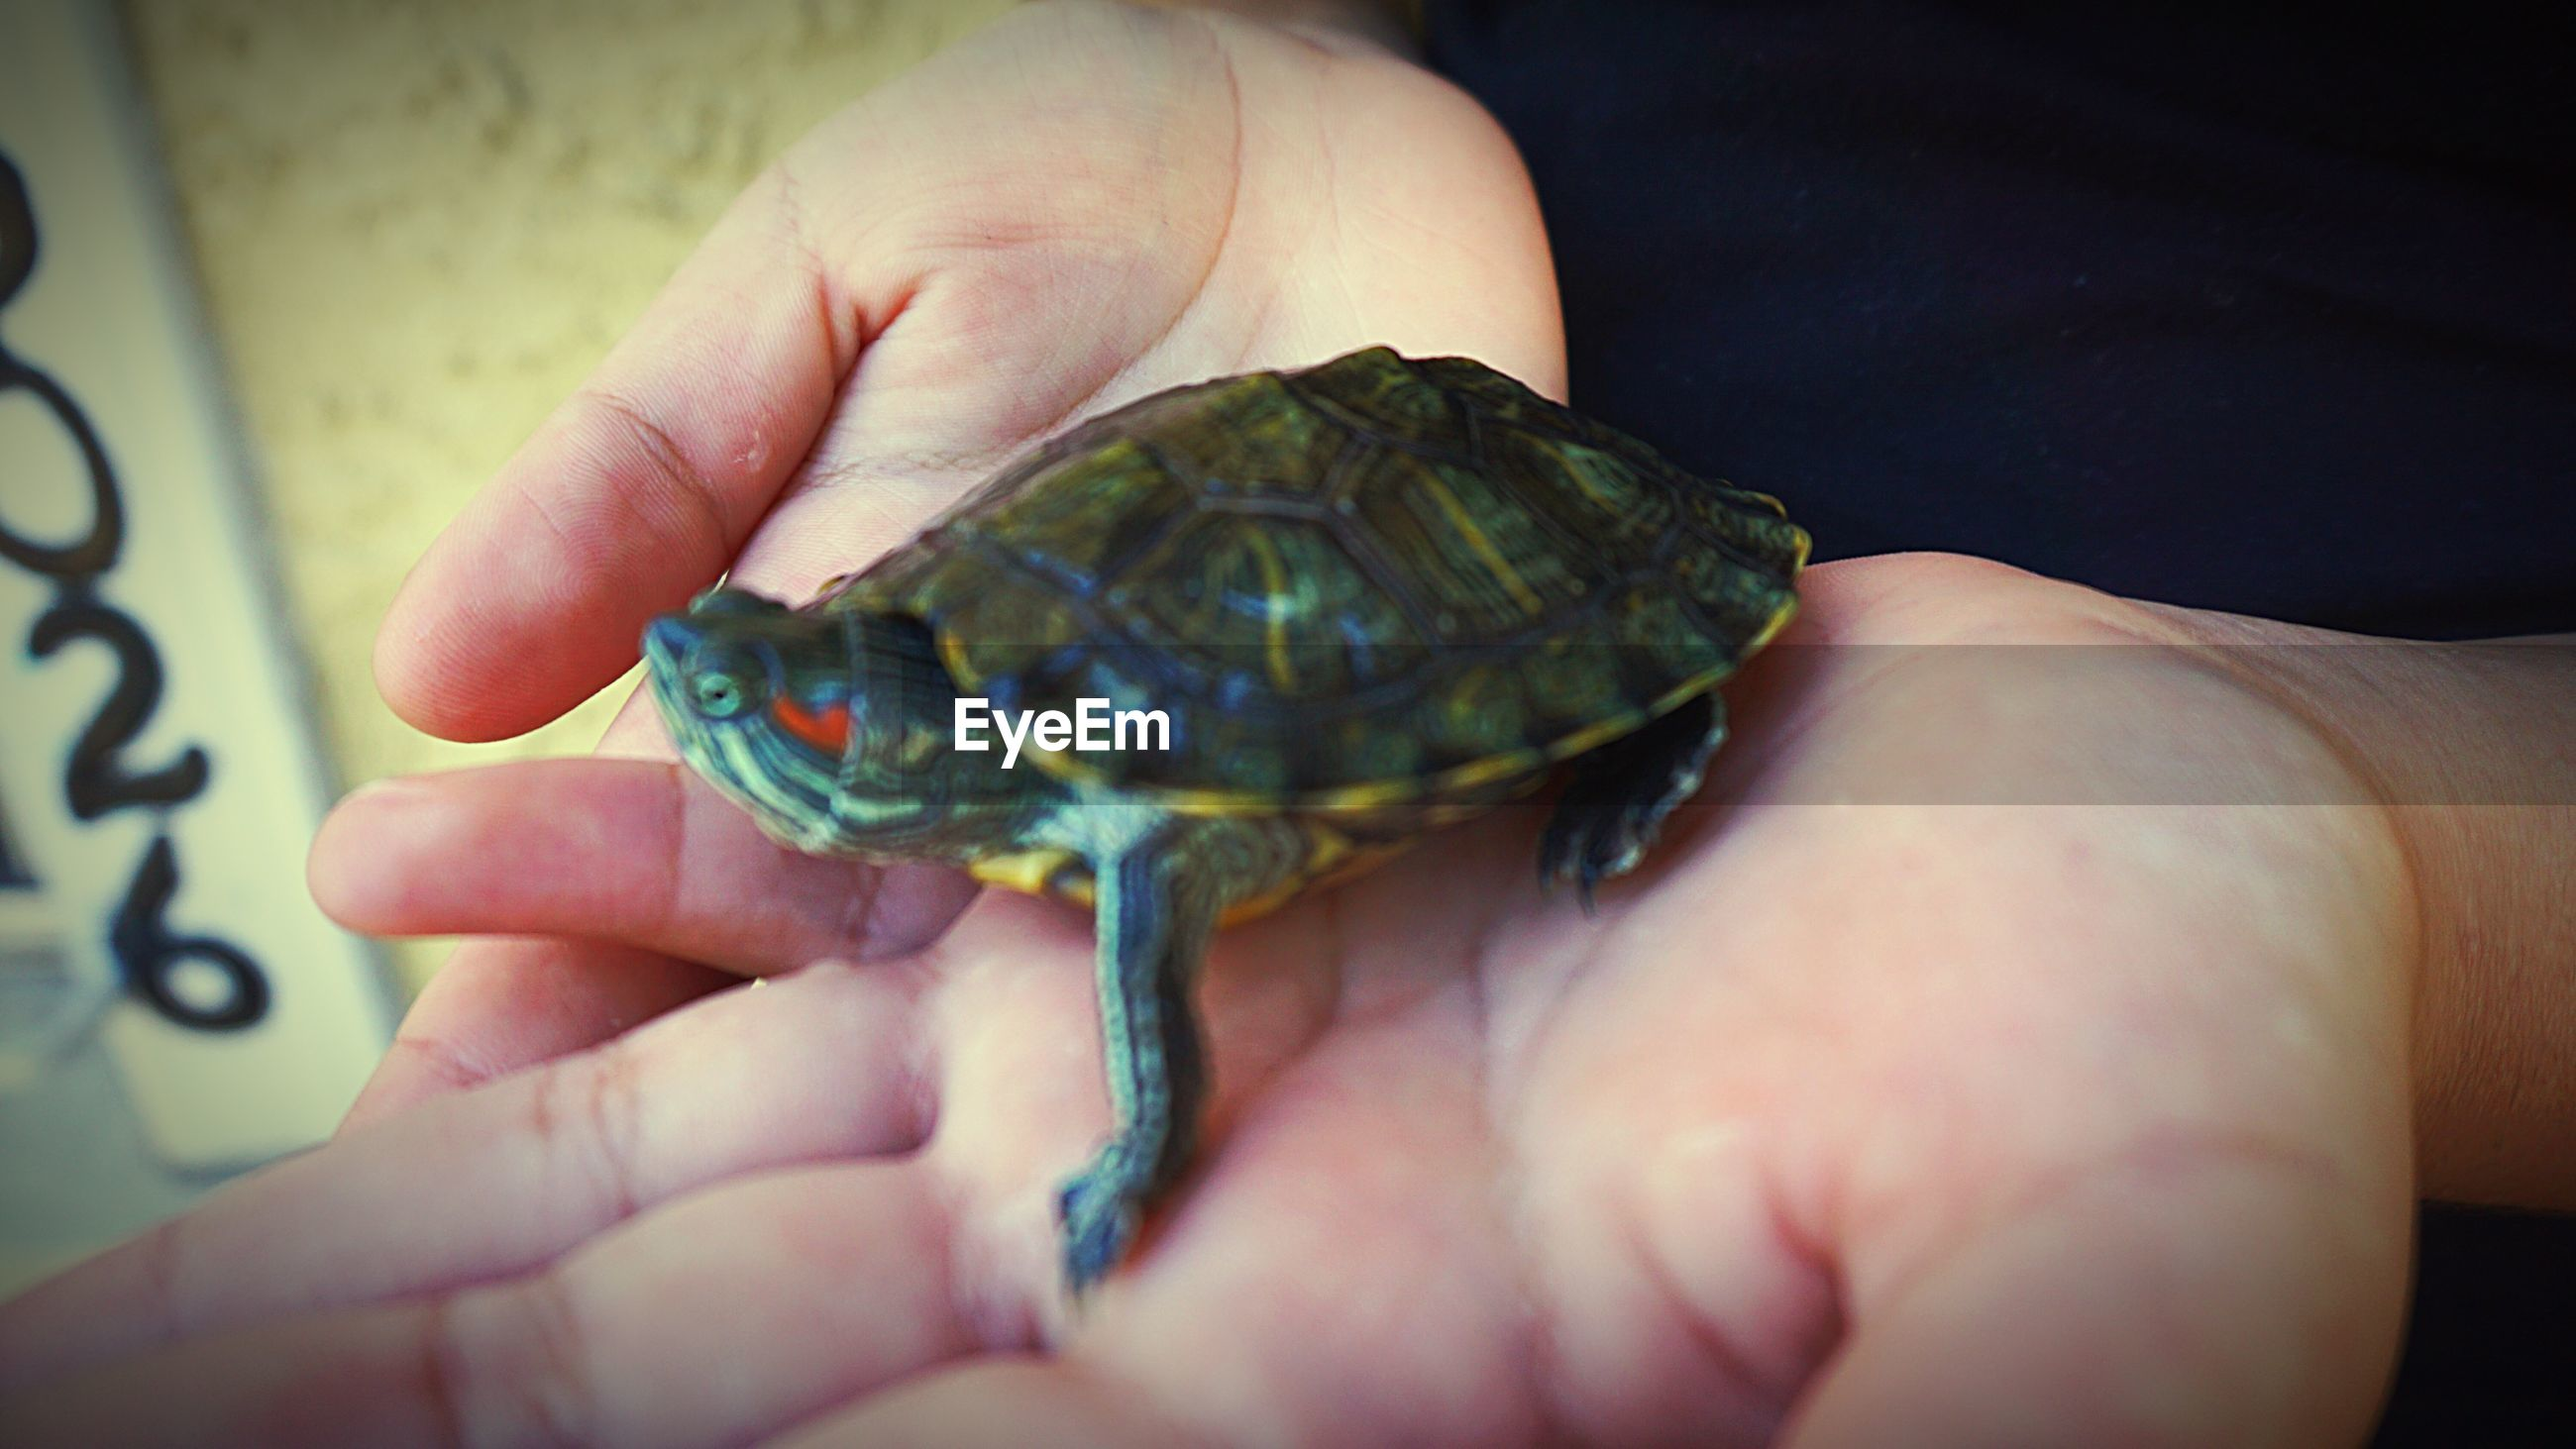 Cropped image of person with turtle